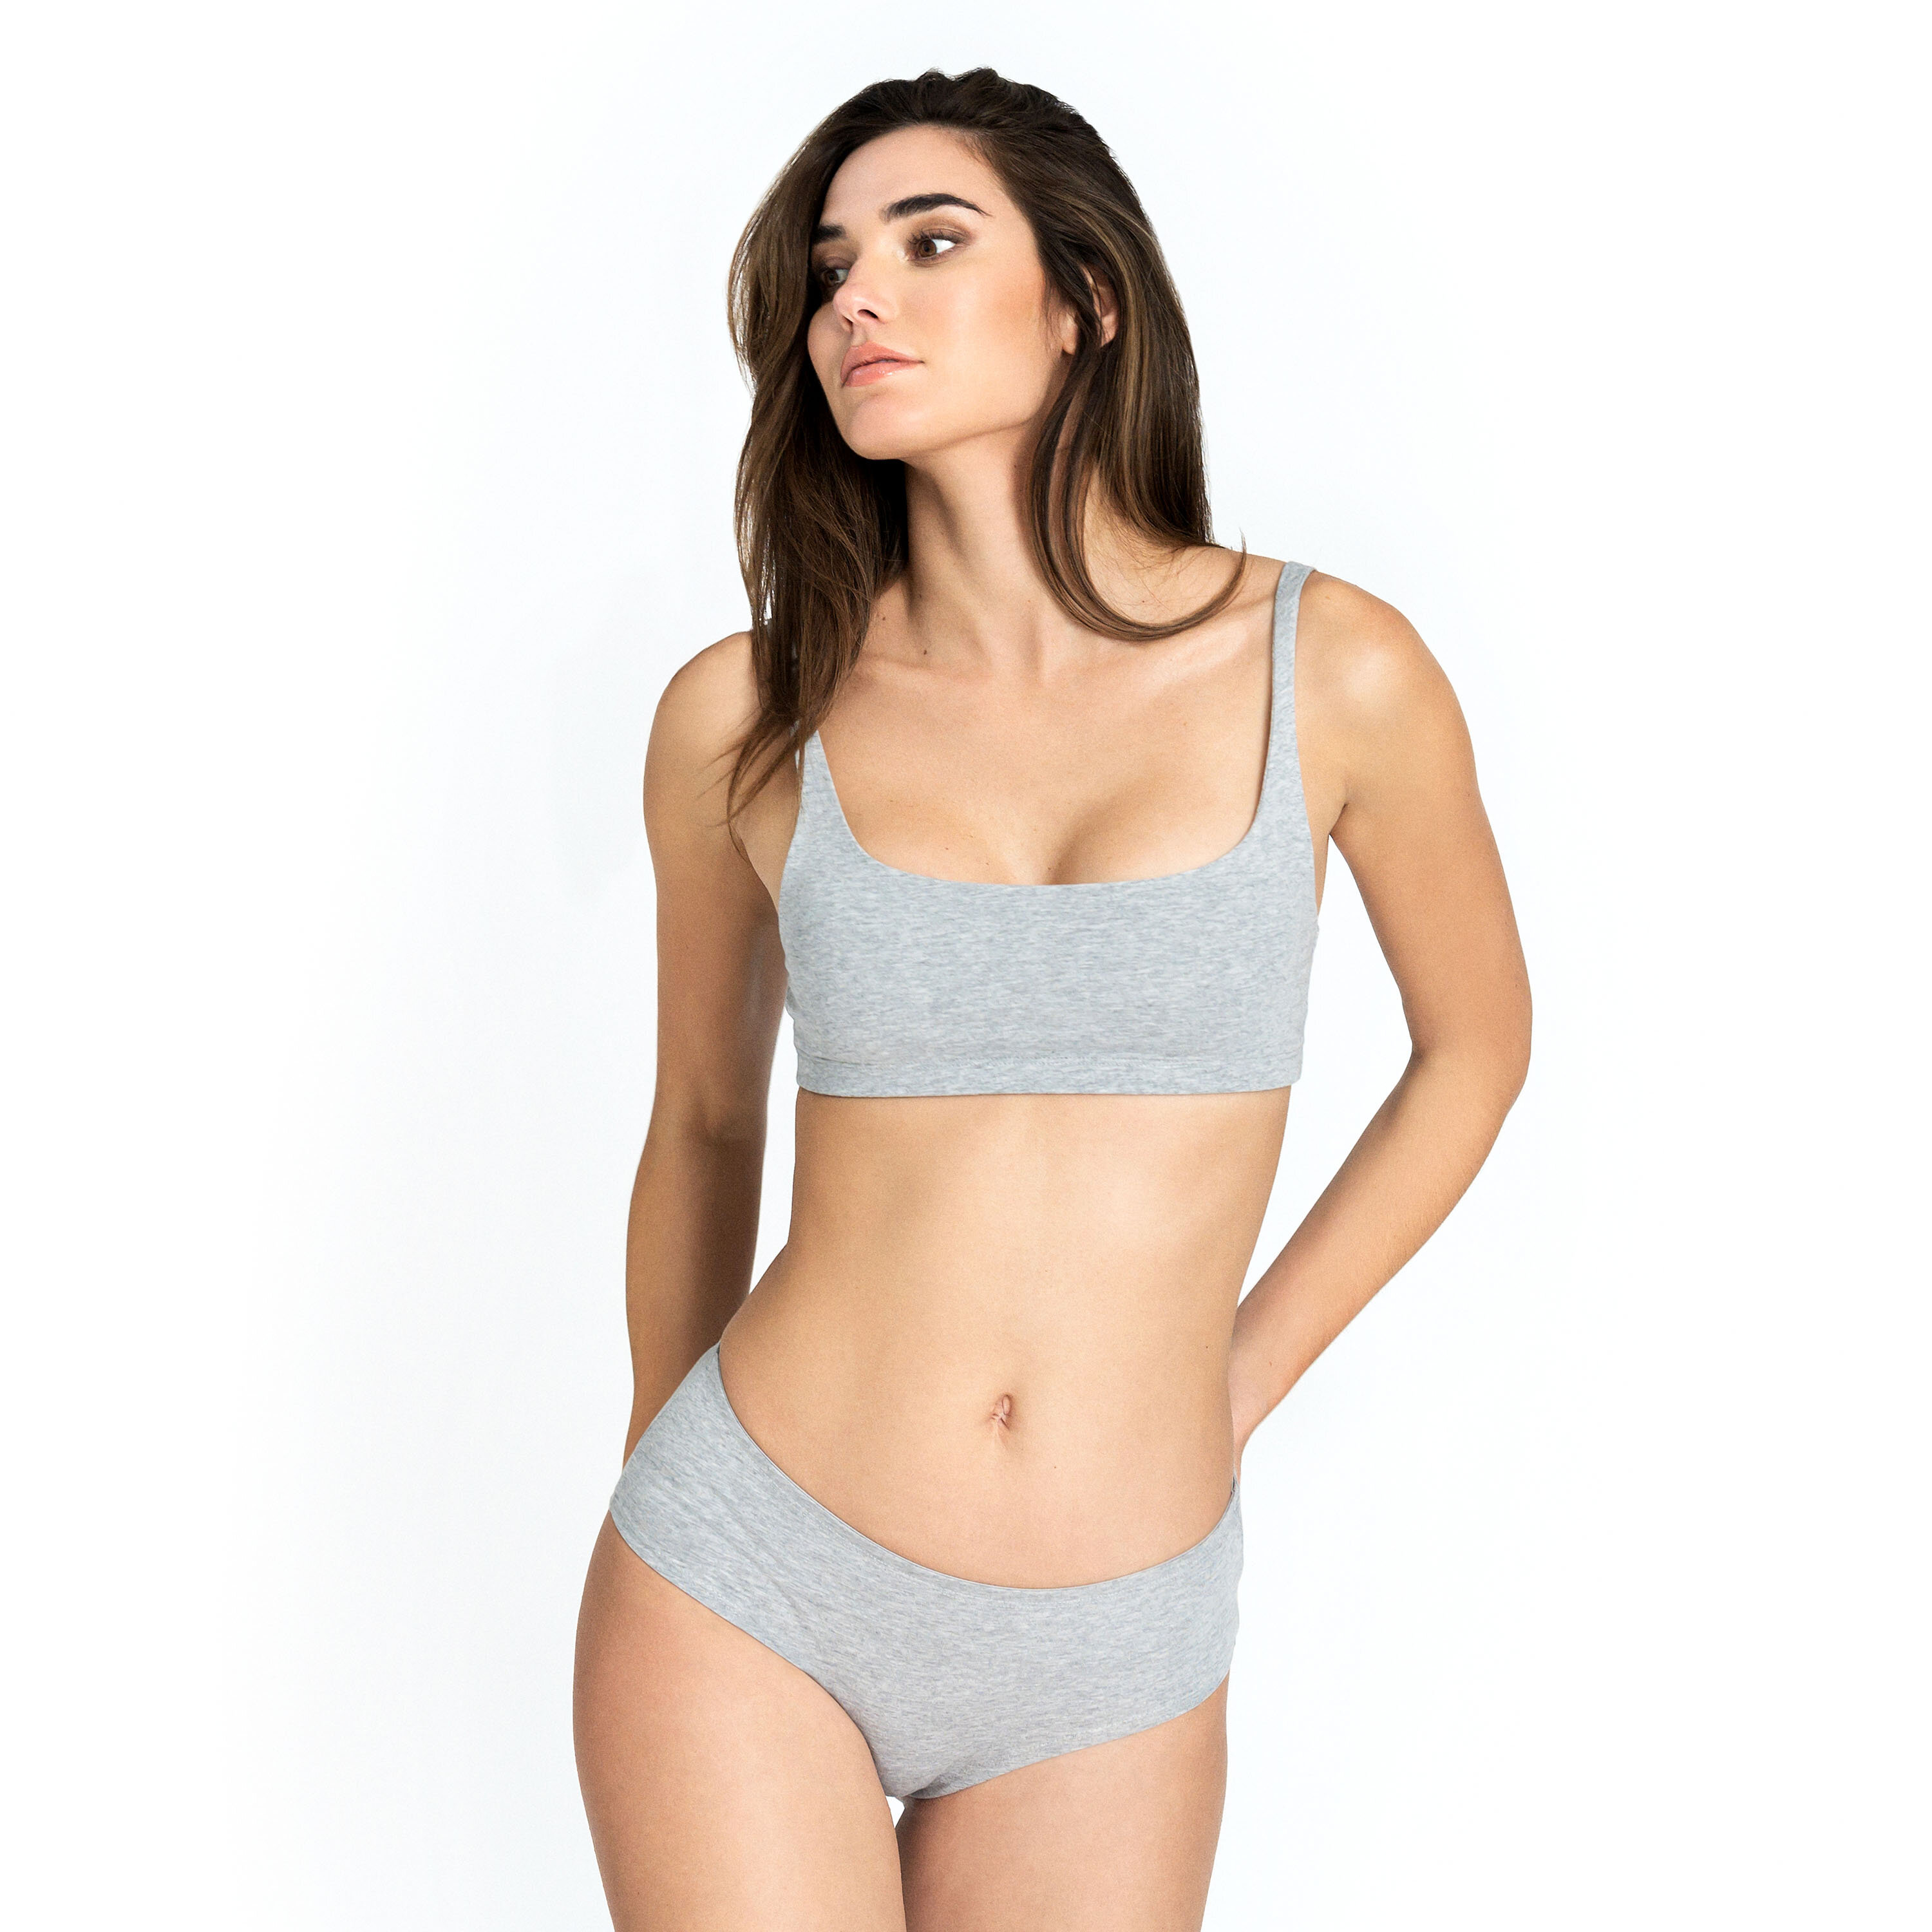 621103_Soft_Bra_grey-melange_1